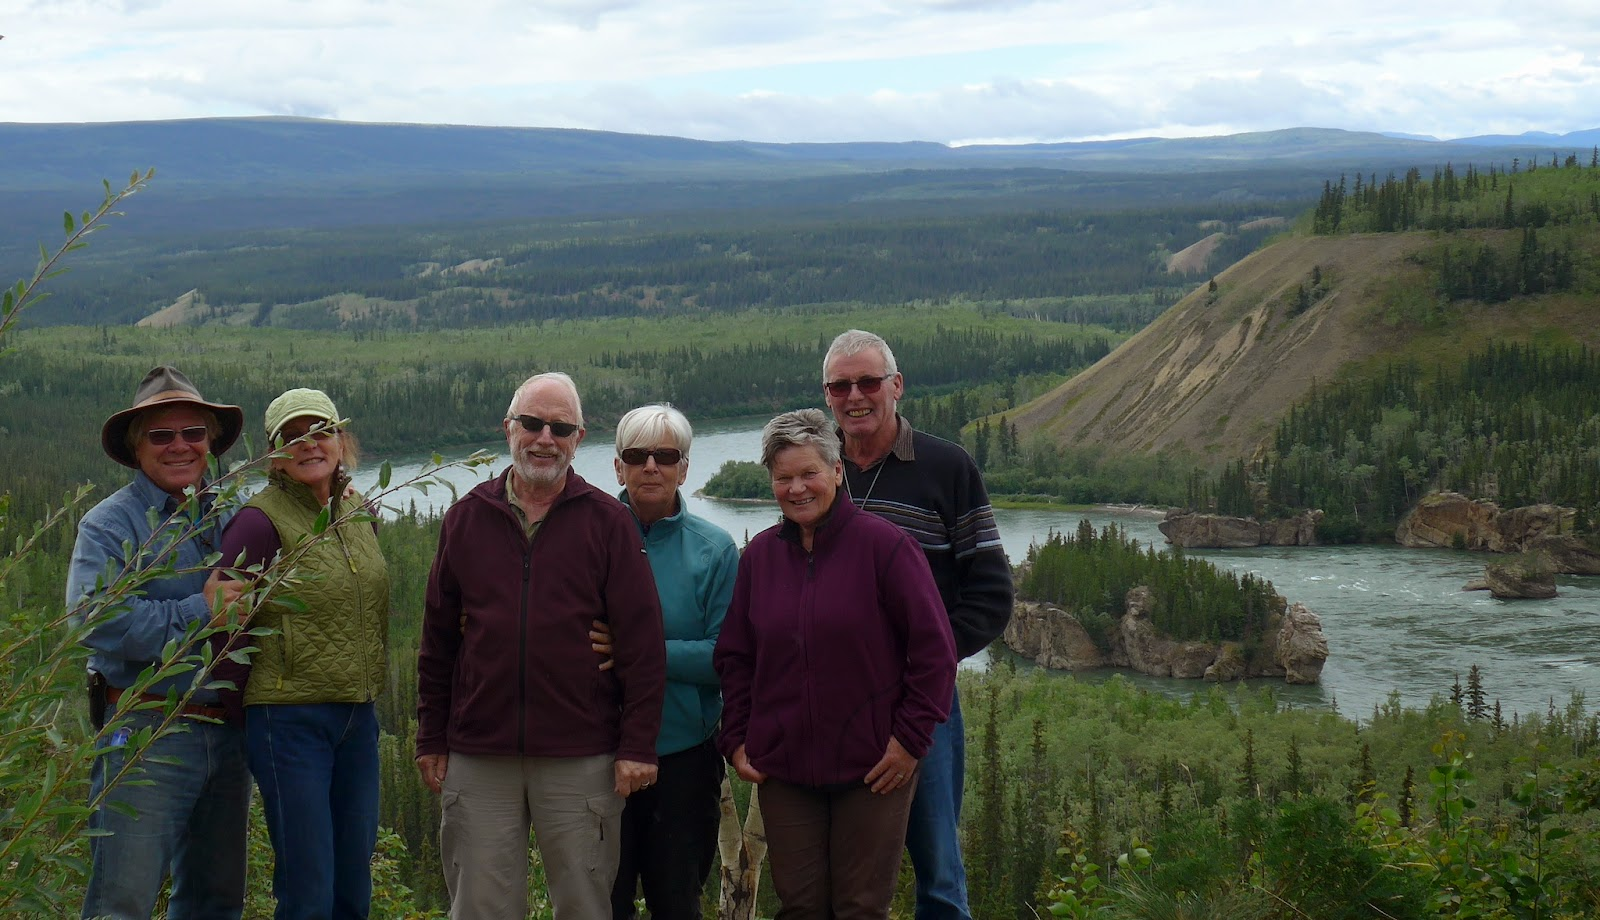 Anders, Liz, Christian, Annemarie, Lizbeth and Hansuli at Five Finger Rapids, Yukon Canada.